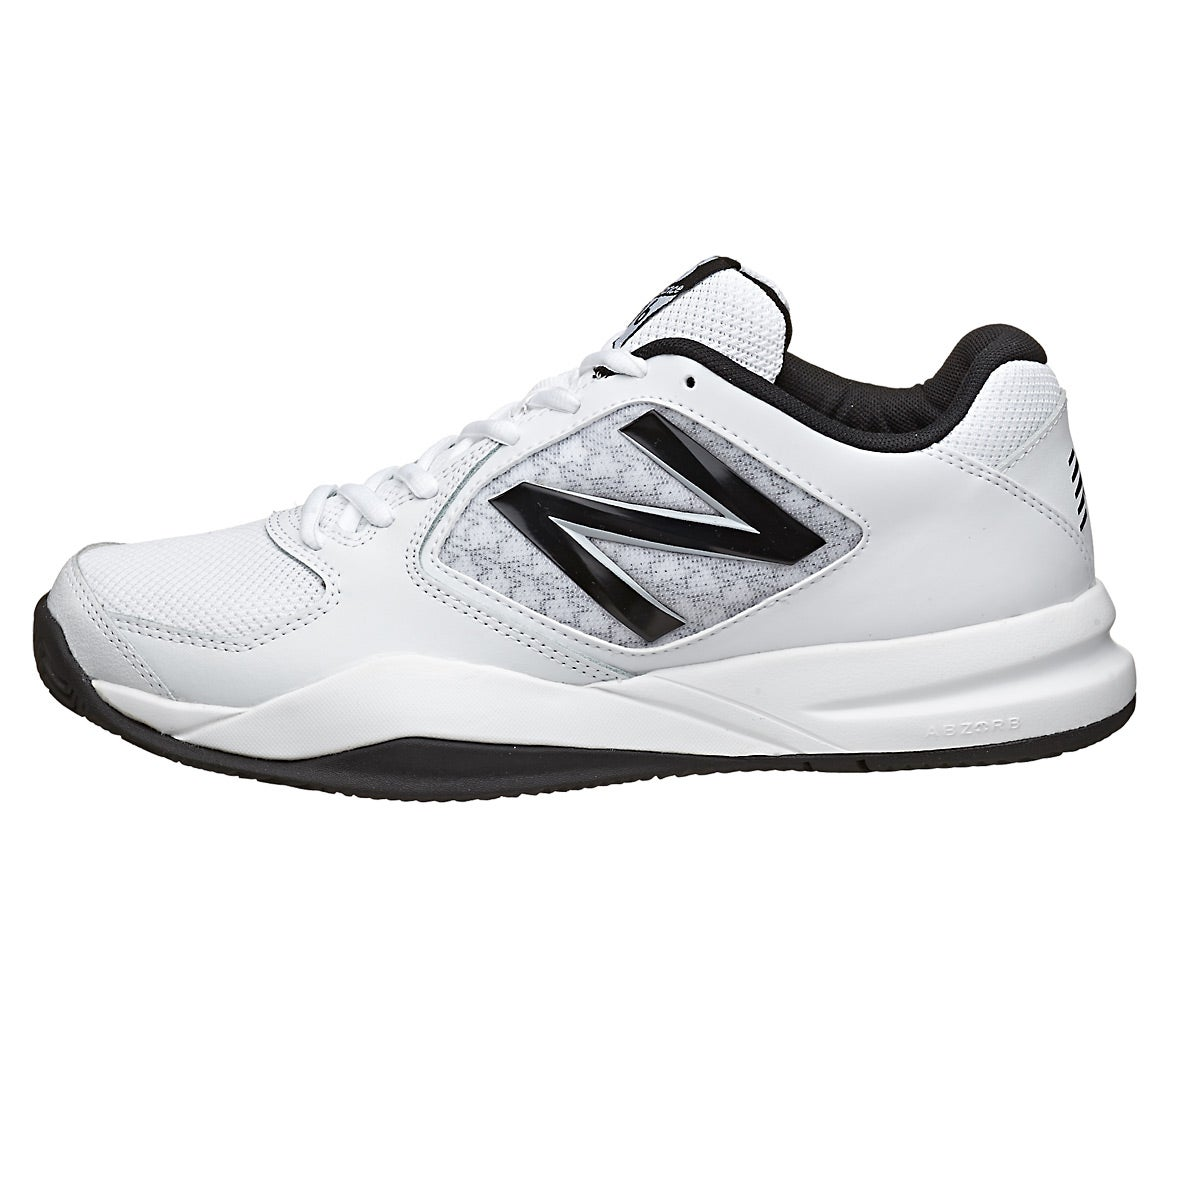 New Balance MC 696v2 D White/Black Men's Shoes 360° View